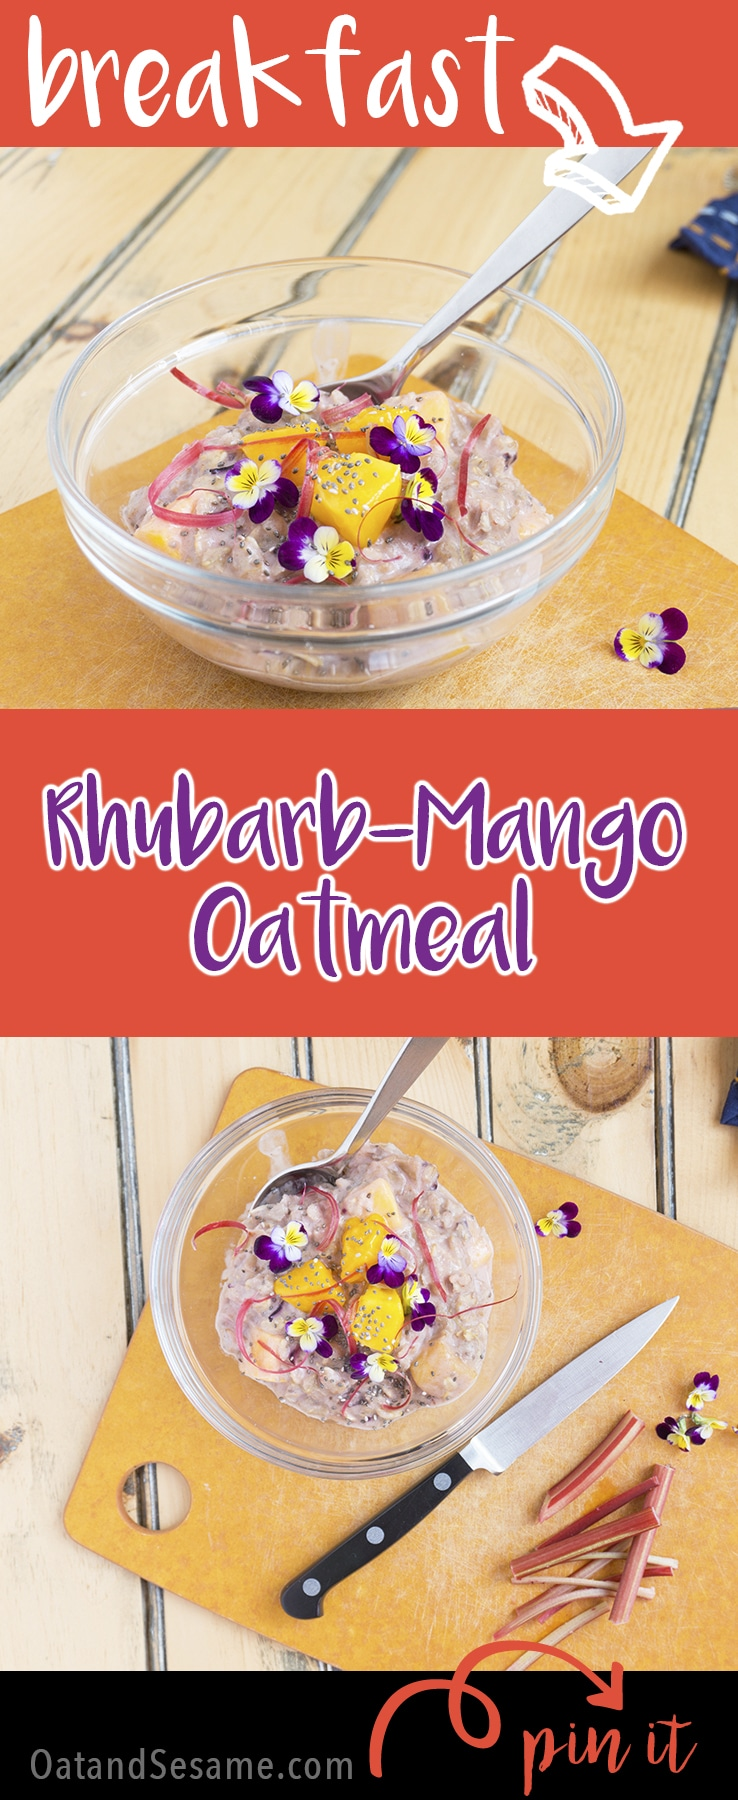 This RHUBARB-MANGO Oatmeal is the perfect blend of sweet and tart. I always thought strawberry rhubarb was the best, but mango is equally as delicious! | RHUBARB | BREAKFAST | OATMEAL | HEALTHY | VEGAN | VEGETARIAN | Recipe at OatandSesame.com